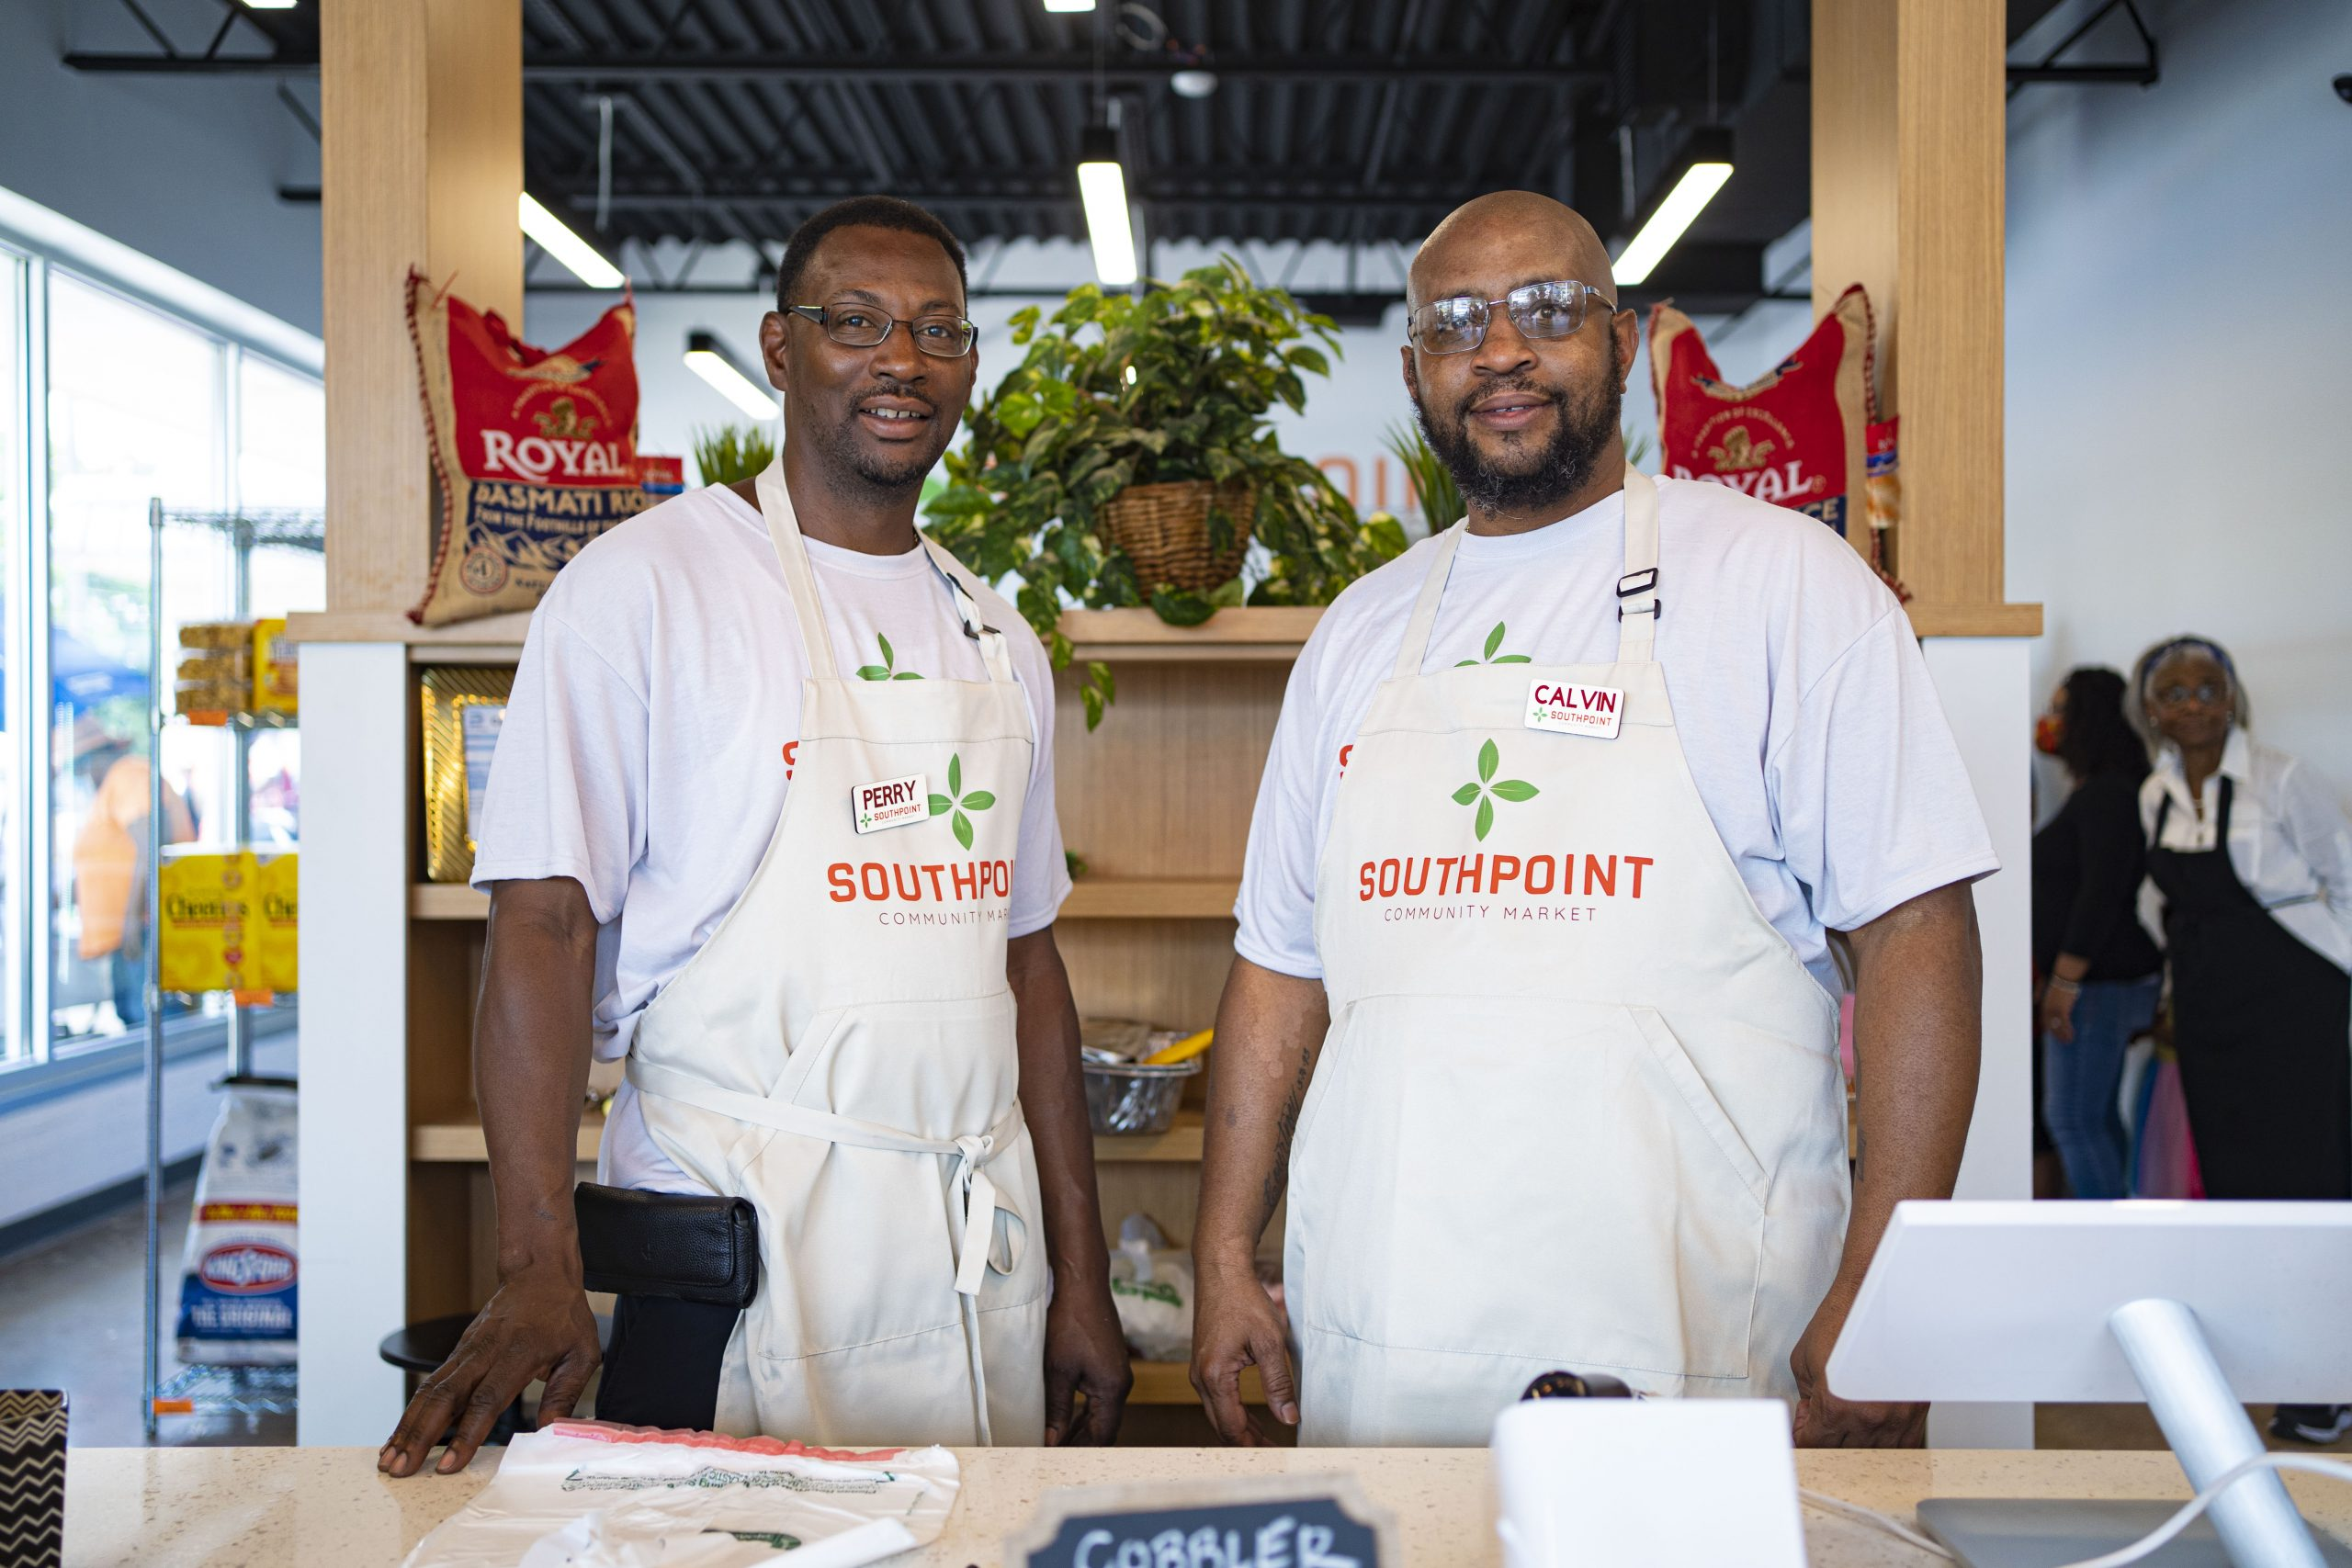 New grocery store reflects Cornerstone church's belief that 'South Dallas deserves beautiful things'